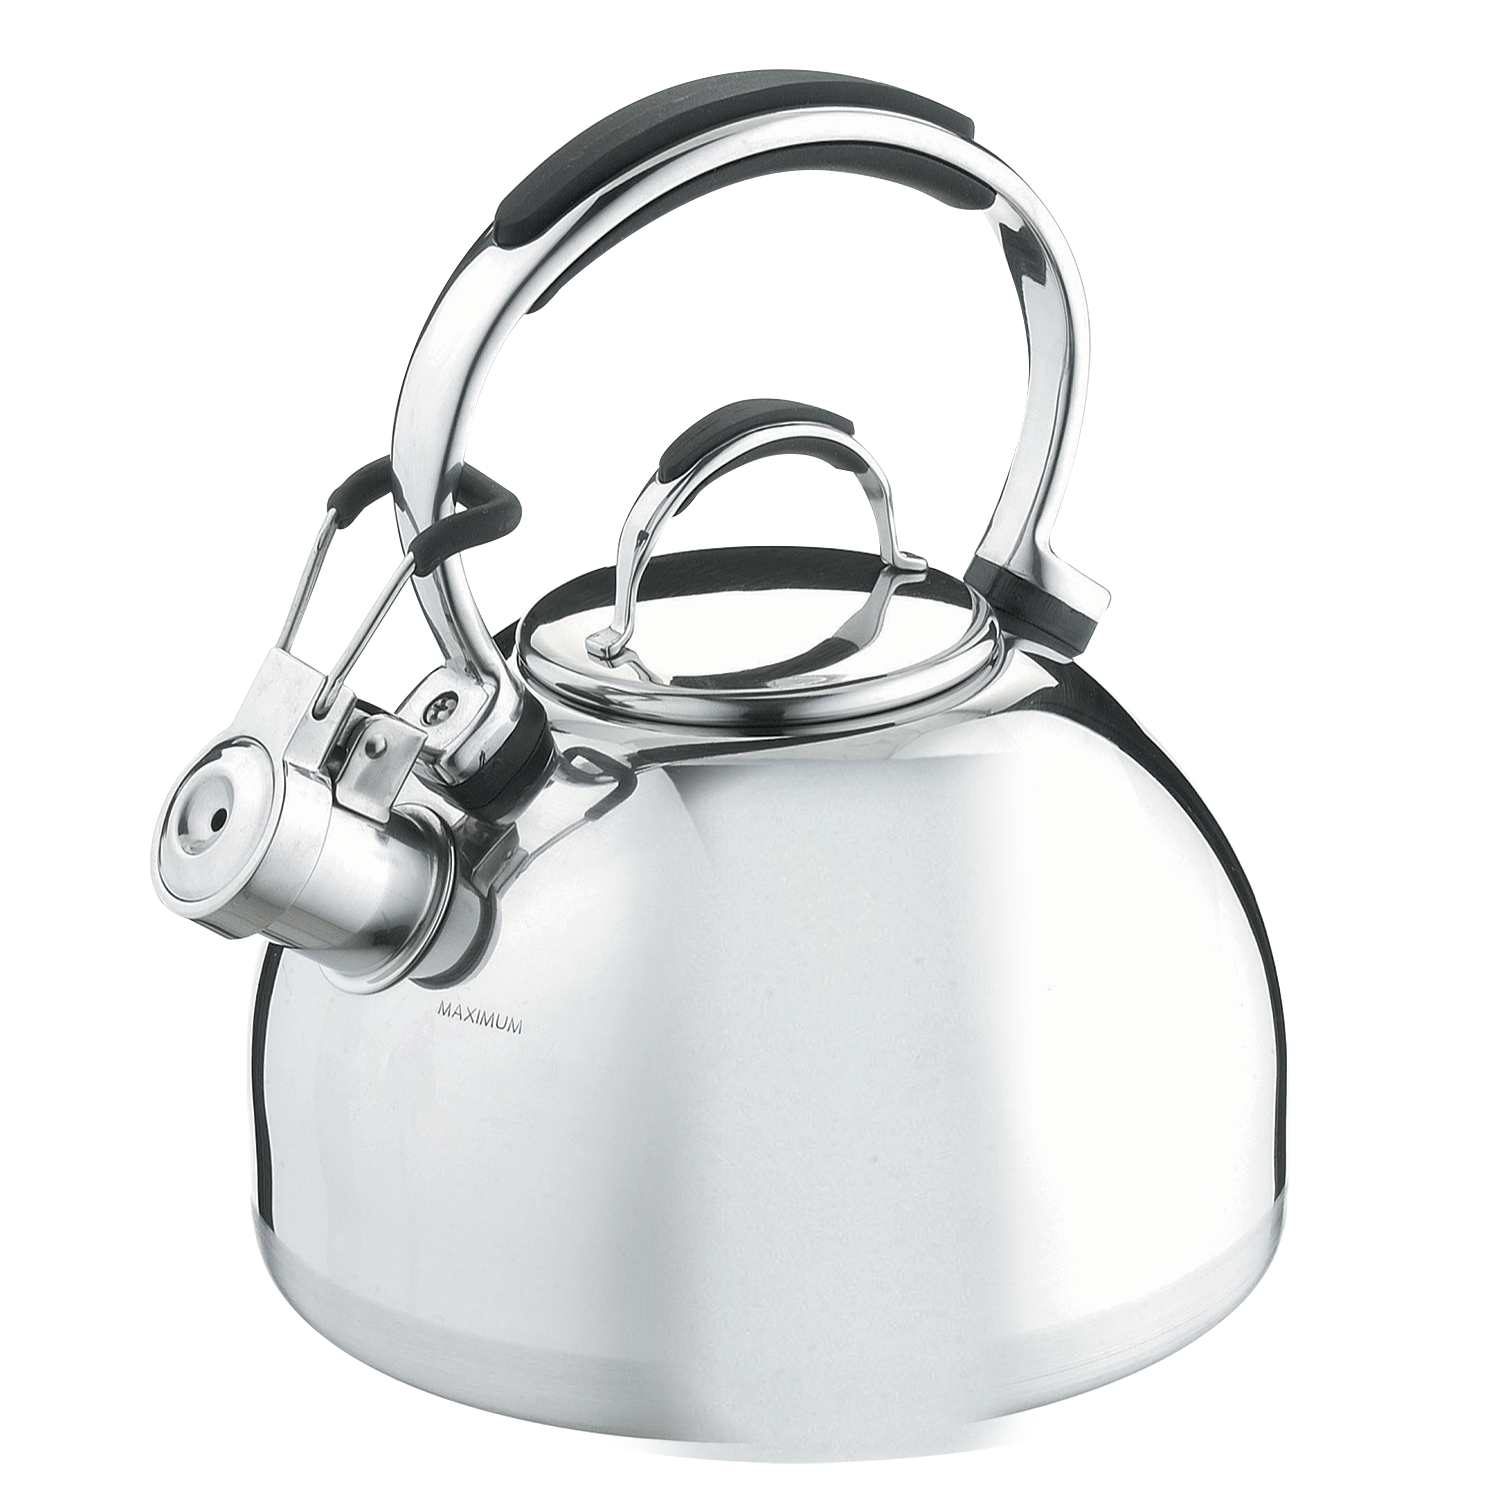 Essteele SS Stove Top Kettle 1.9ltr